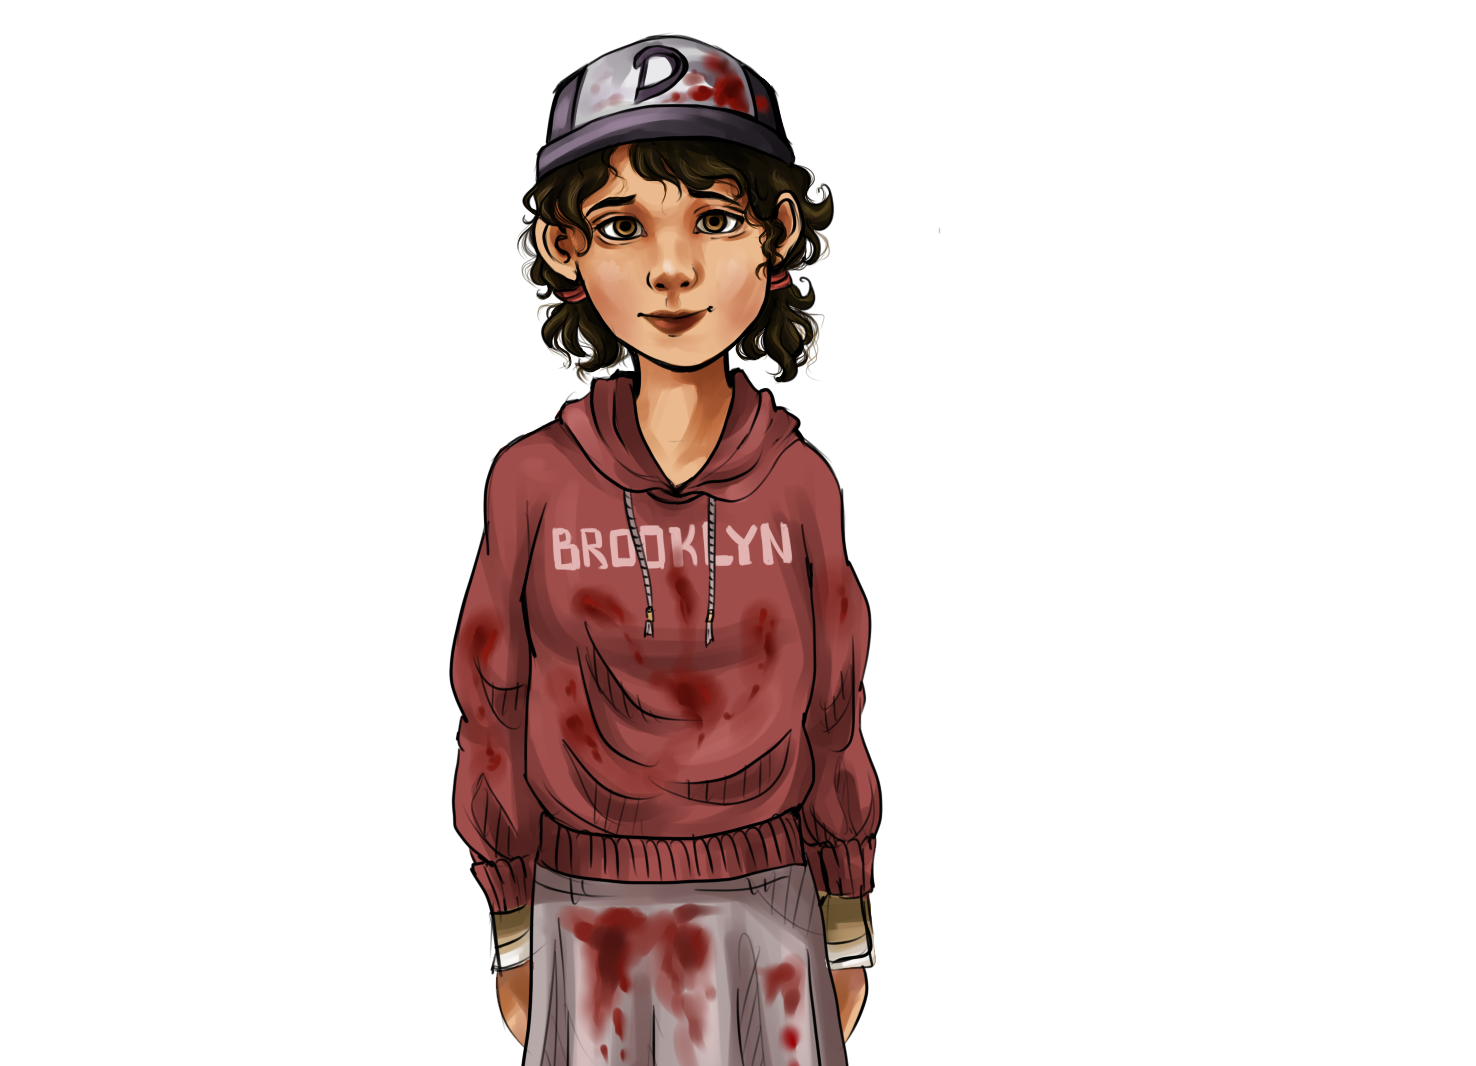 Twd drawing clementine. Lee and on videogame